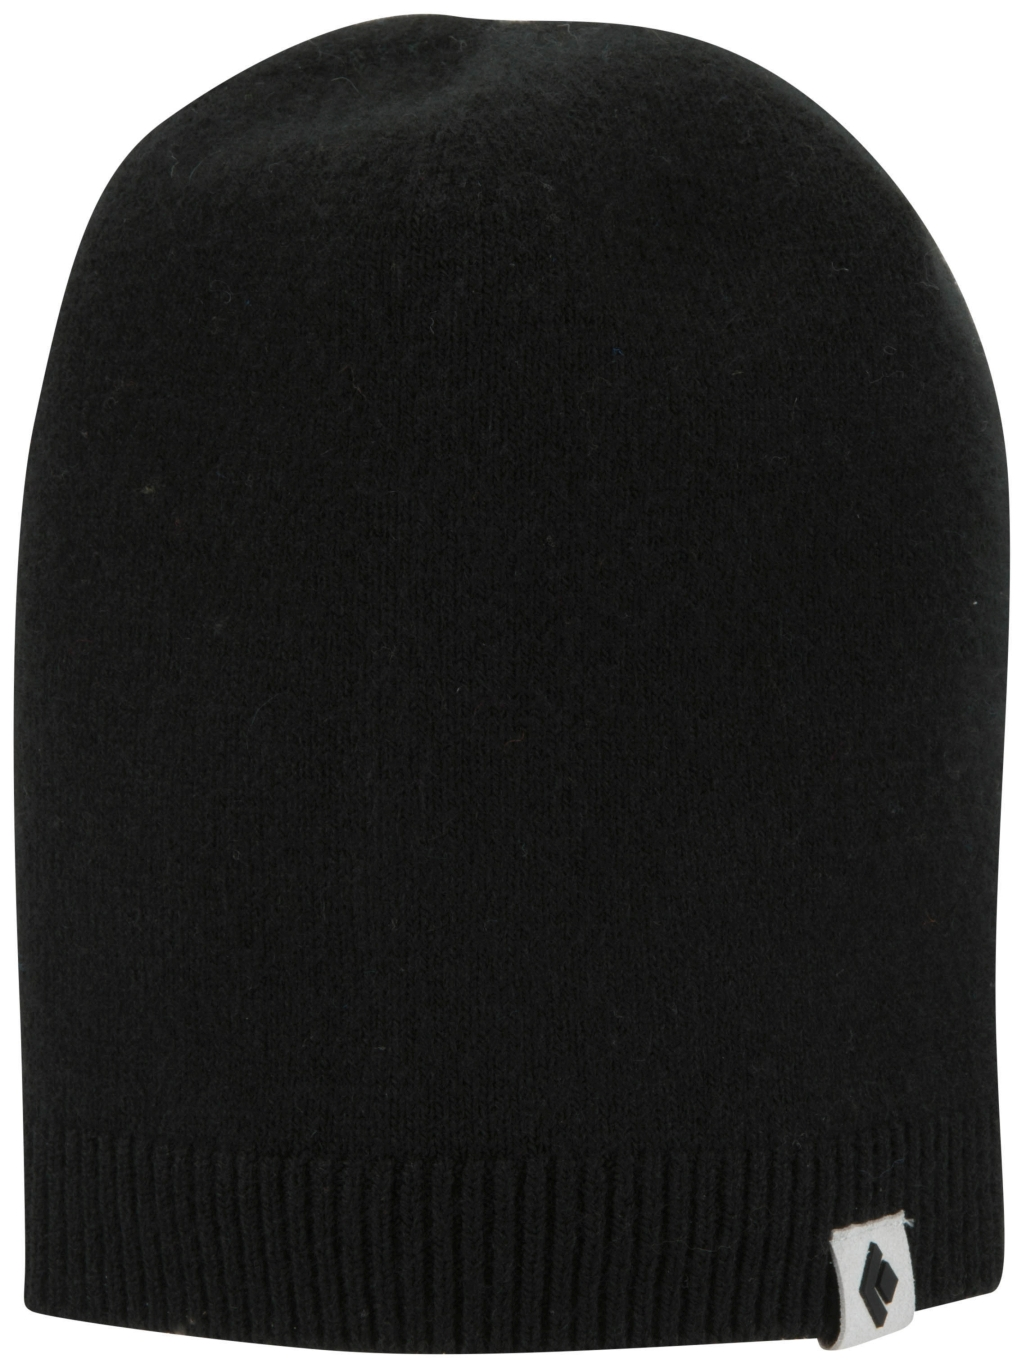 Black Diamond Bd Merino Beanie Black-30